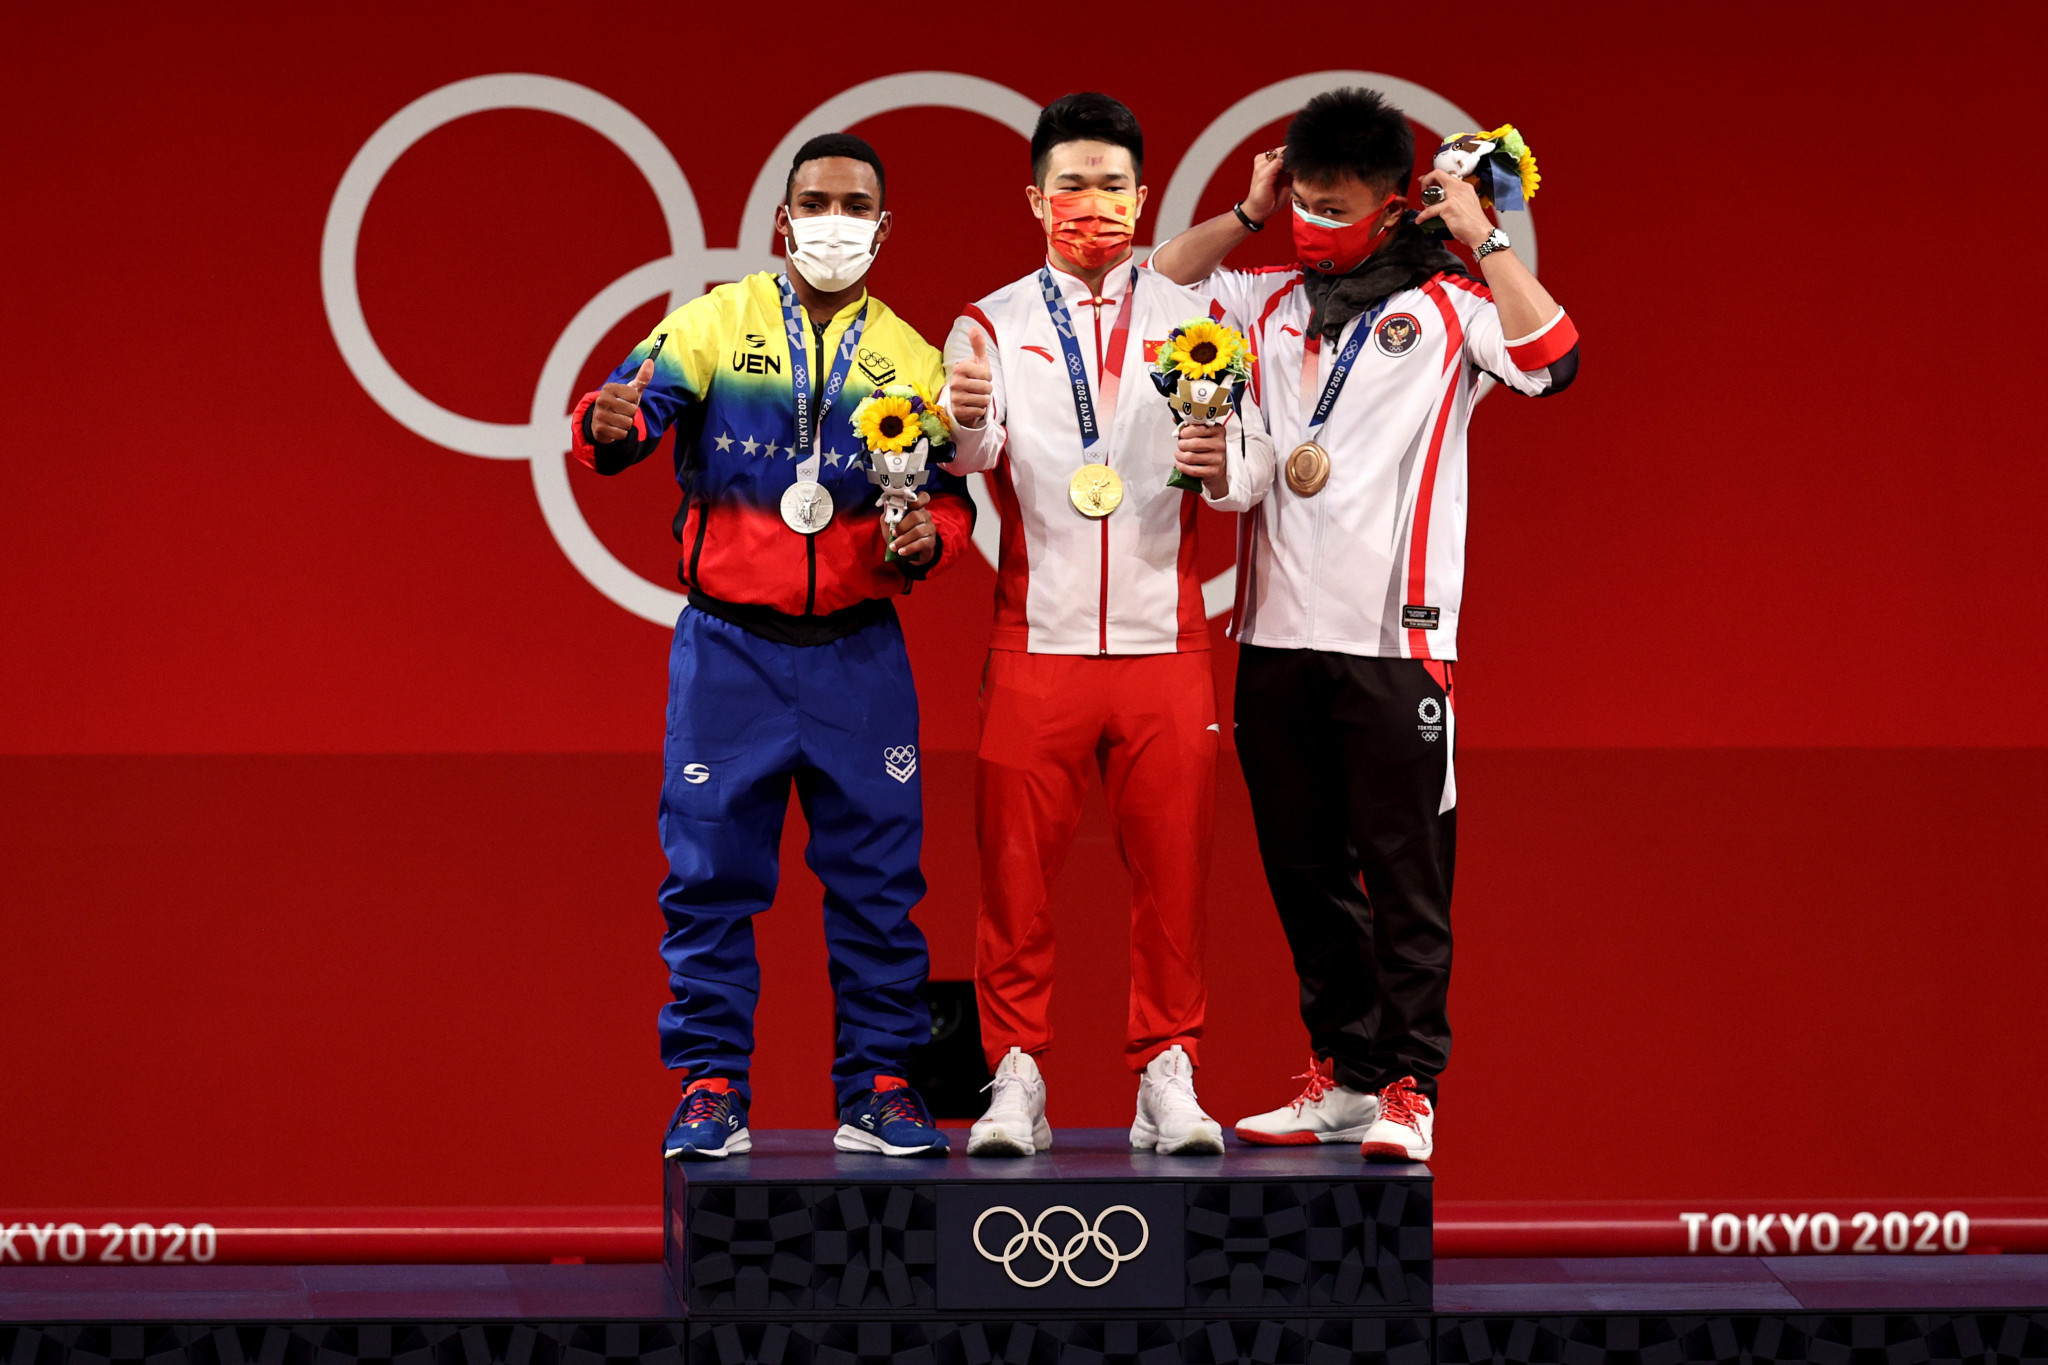 The podium for the men's 73kg category - from left Julio Mayora, Shi Zhiyong and Rahmat Erwin Abdullah ©Getty Images